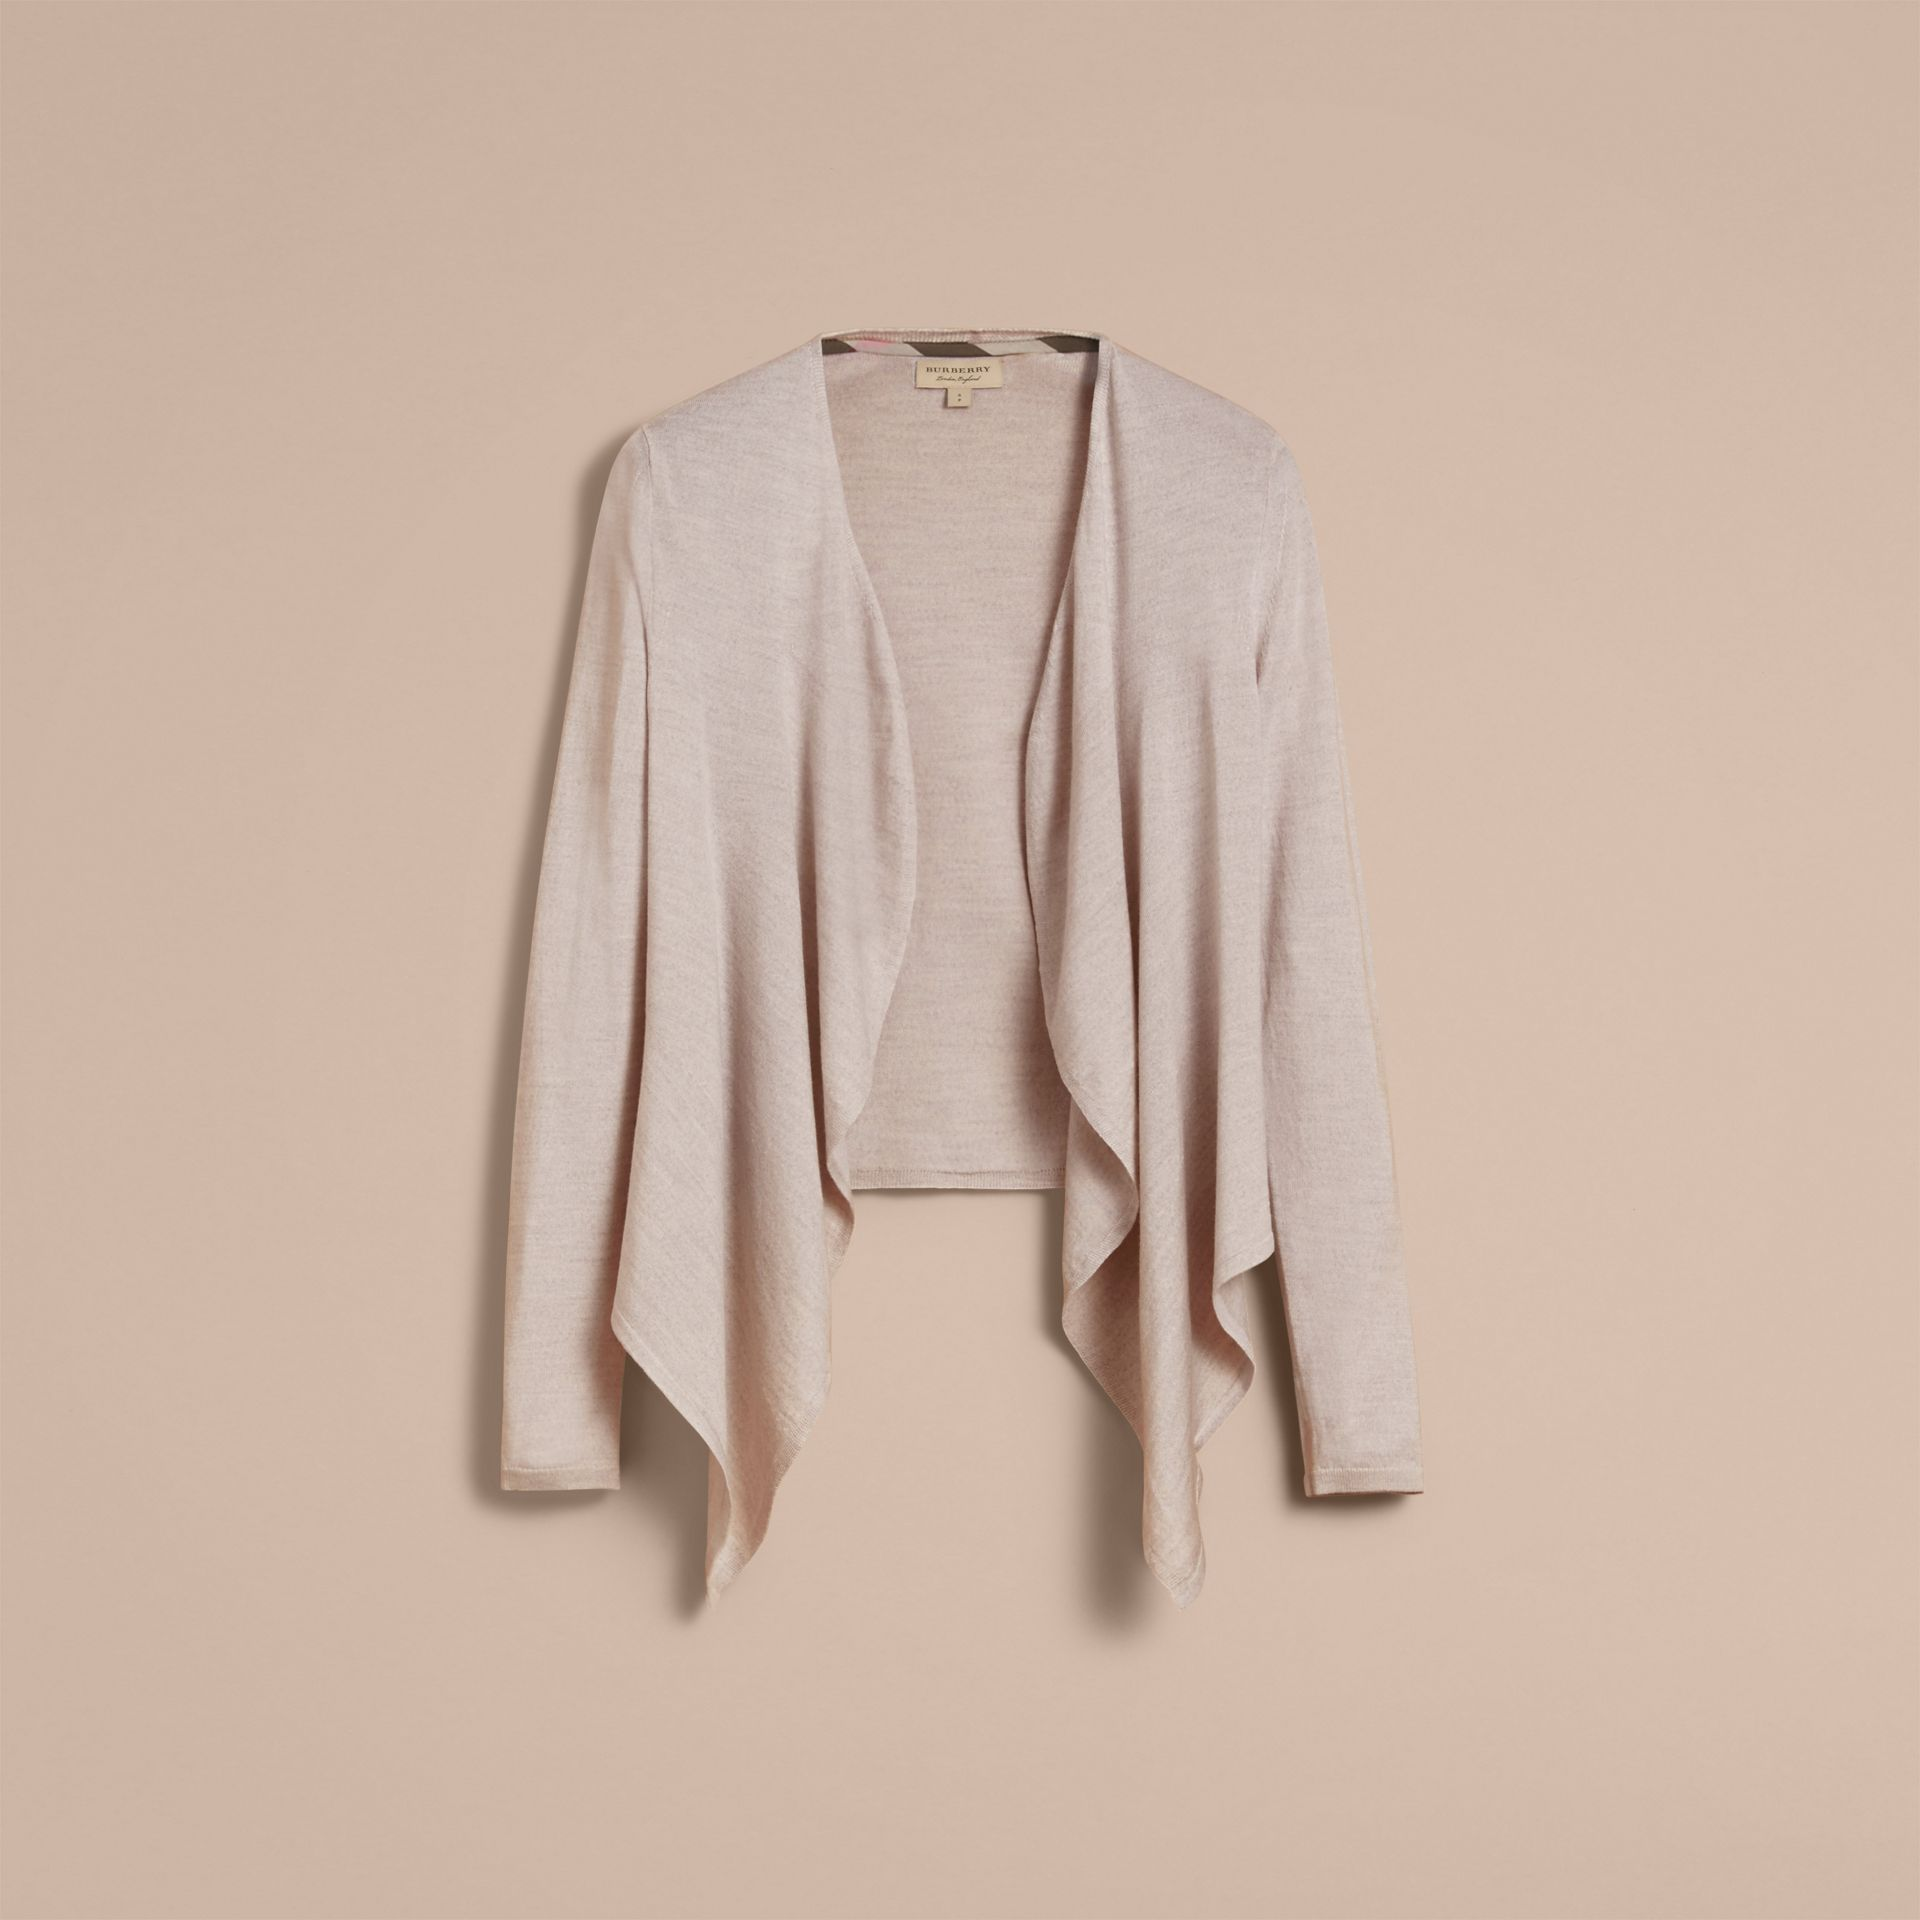 Merino Wool Silk Open Cardigan in Light Grey Melange - Women | Burberry - gallery image 4